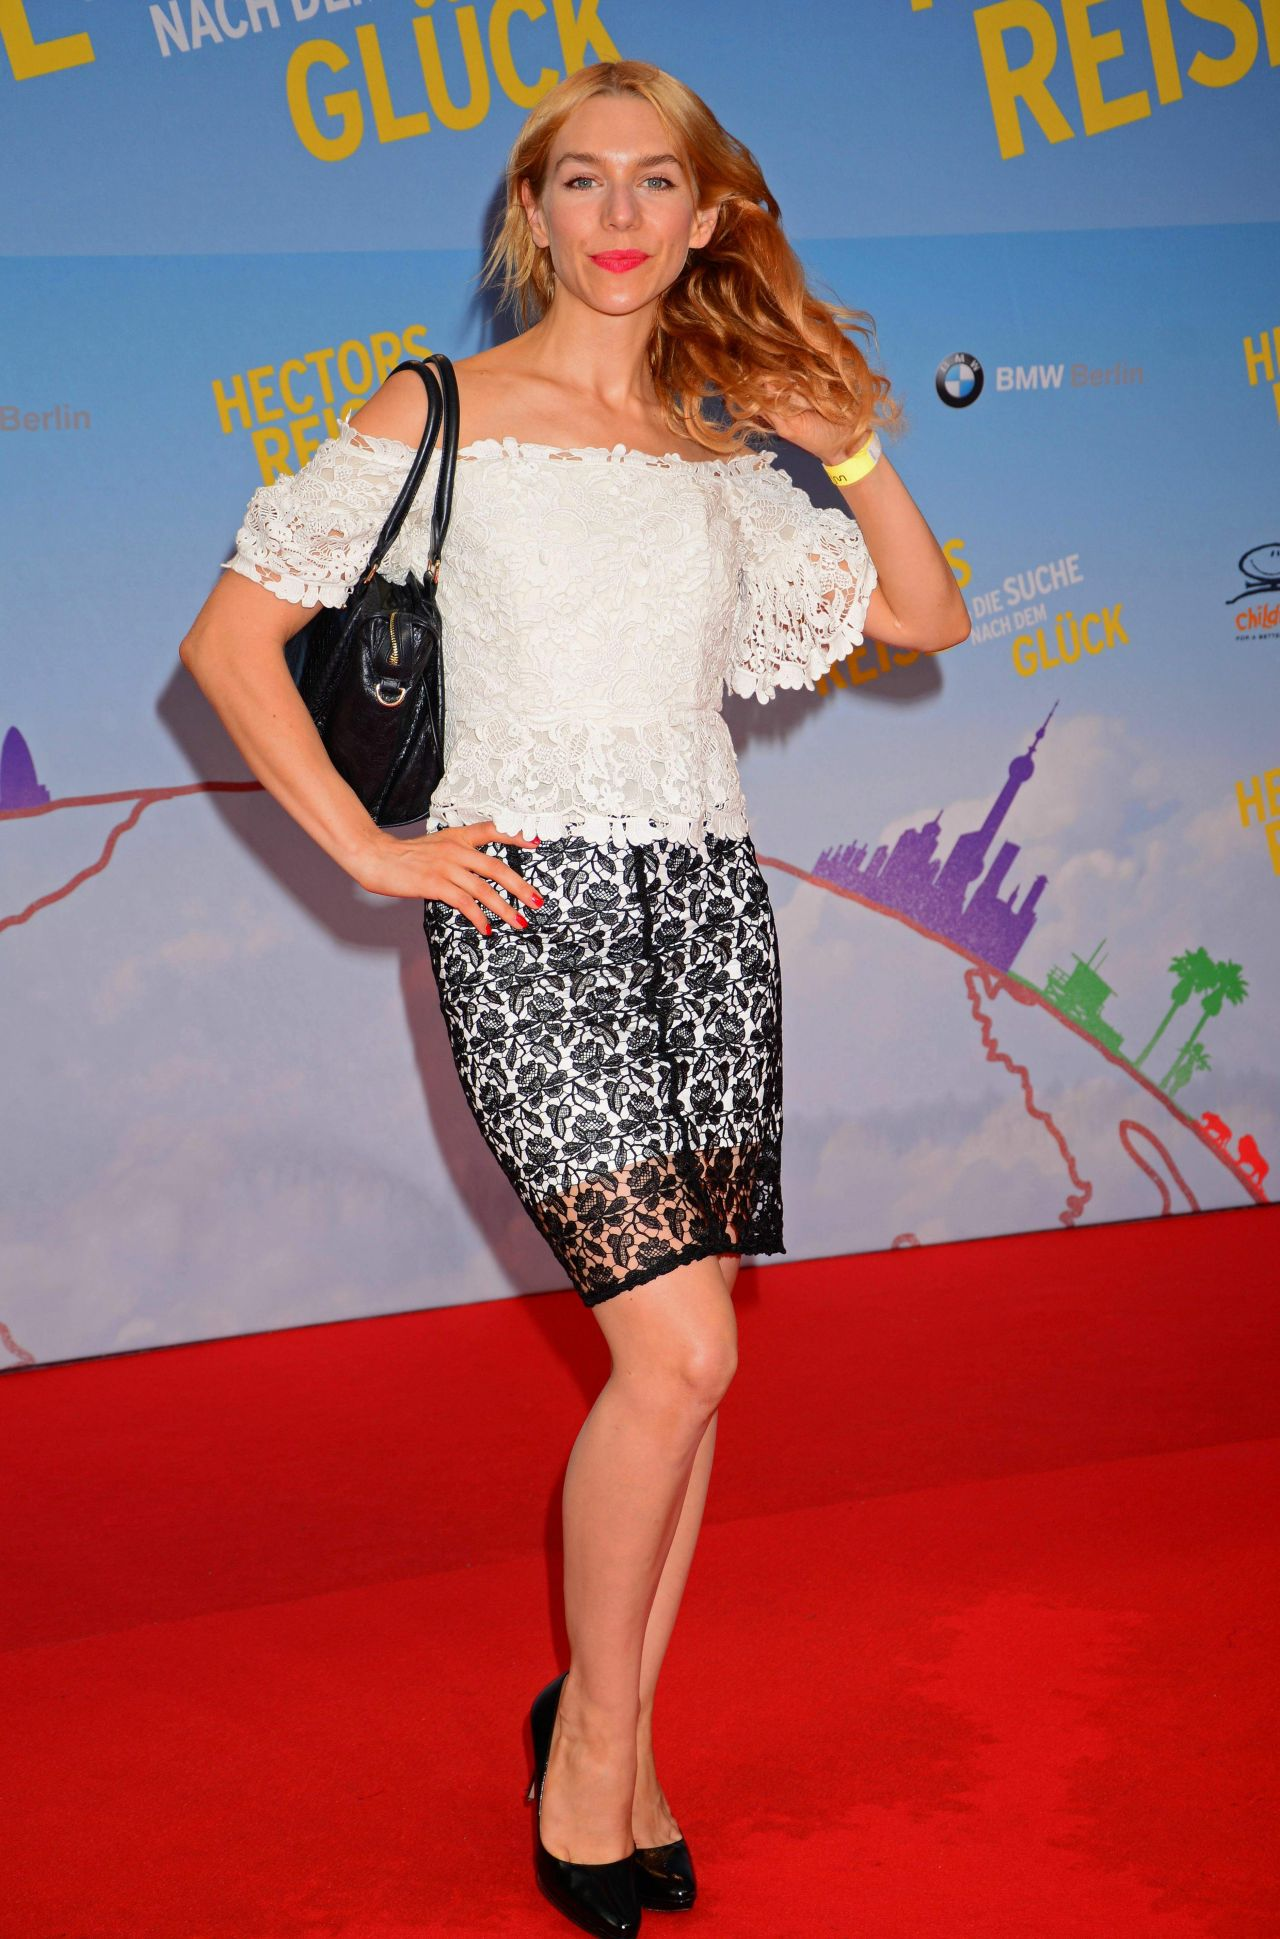 Julia Dietze Hector S Journey Movie Premiere In Berlin